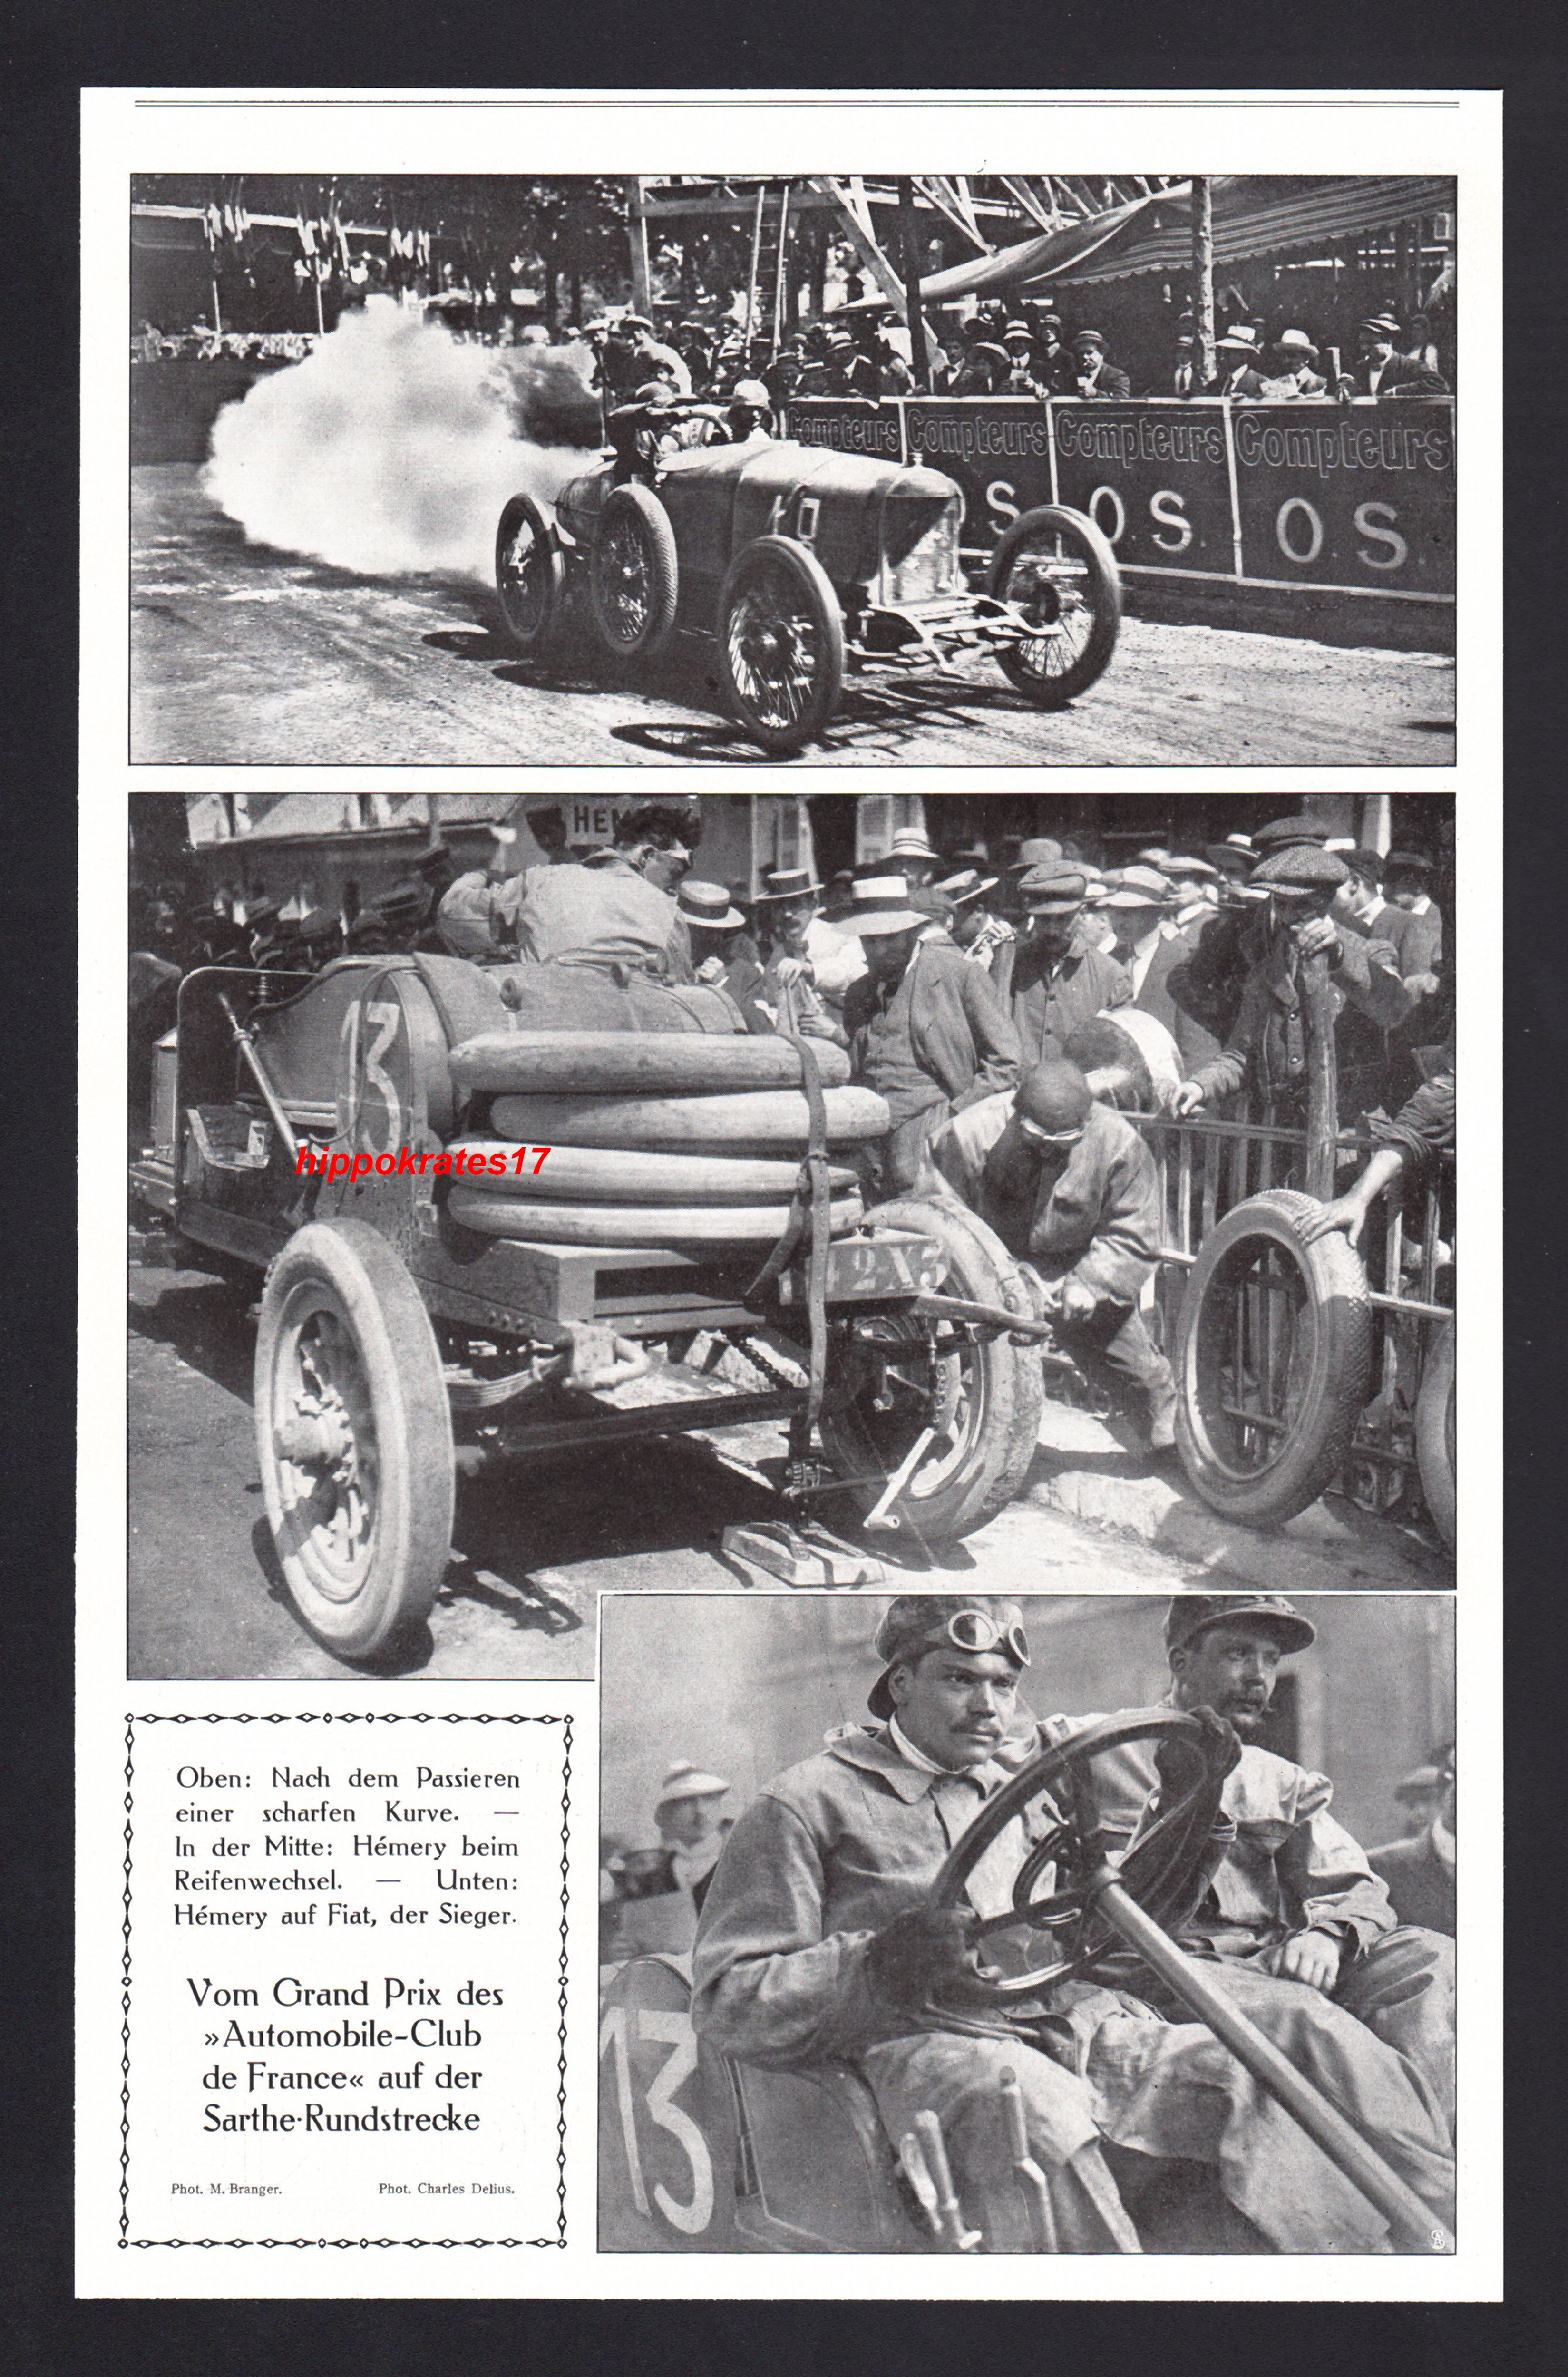 grand prix automobile club de france 1911 sarthe strecke autorennen car voiturec ebay. Black Bedroom Furniture Sets. Home Design Ideas